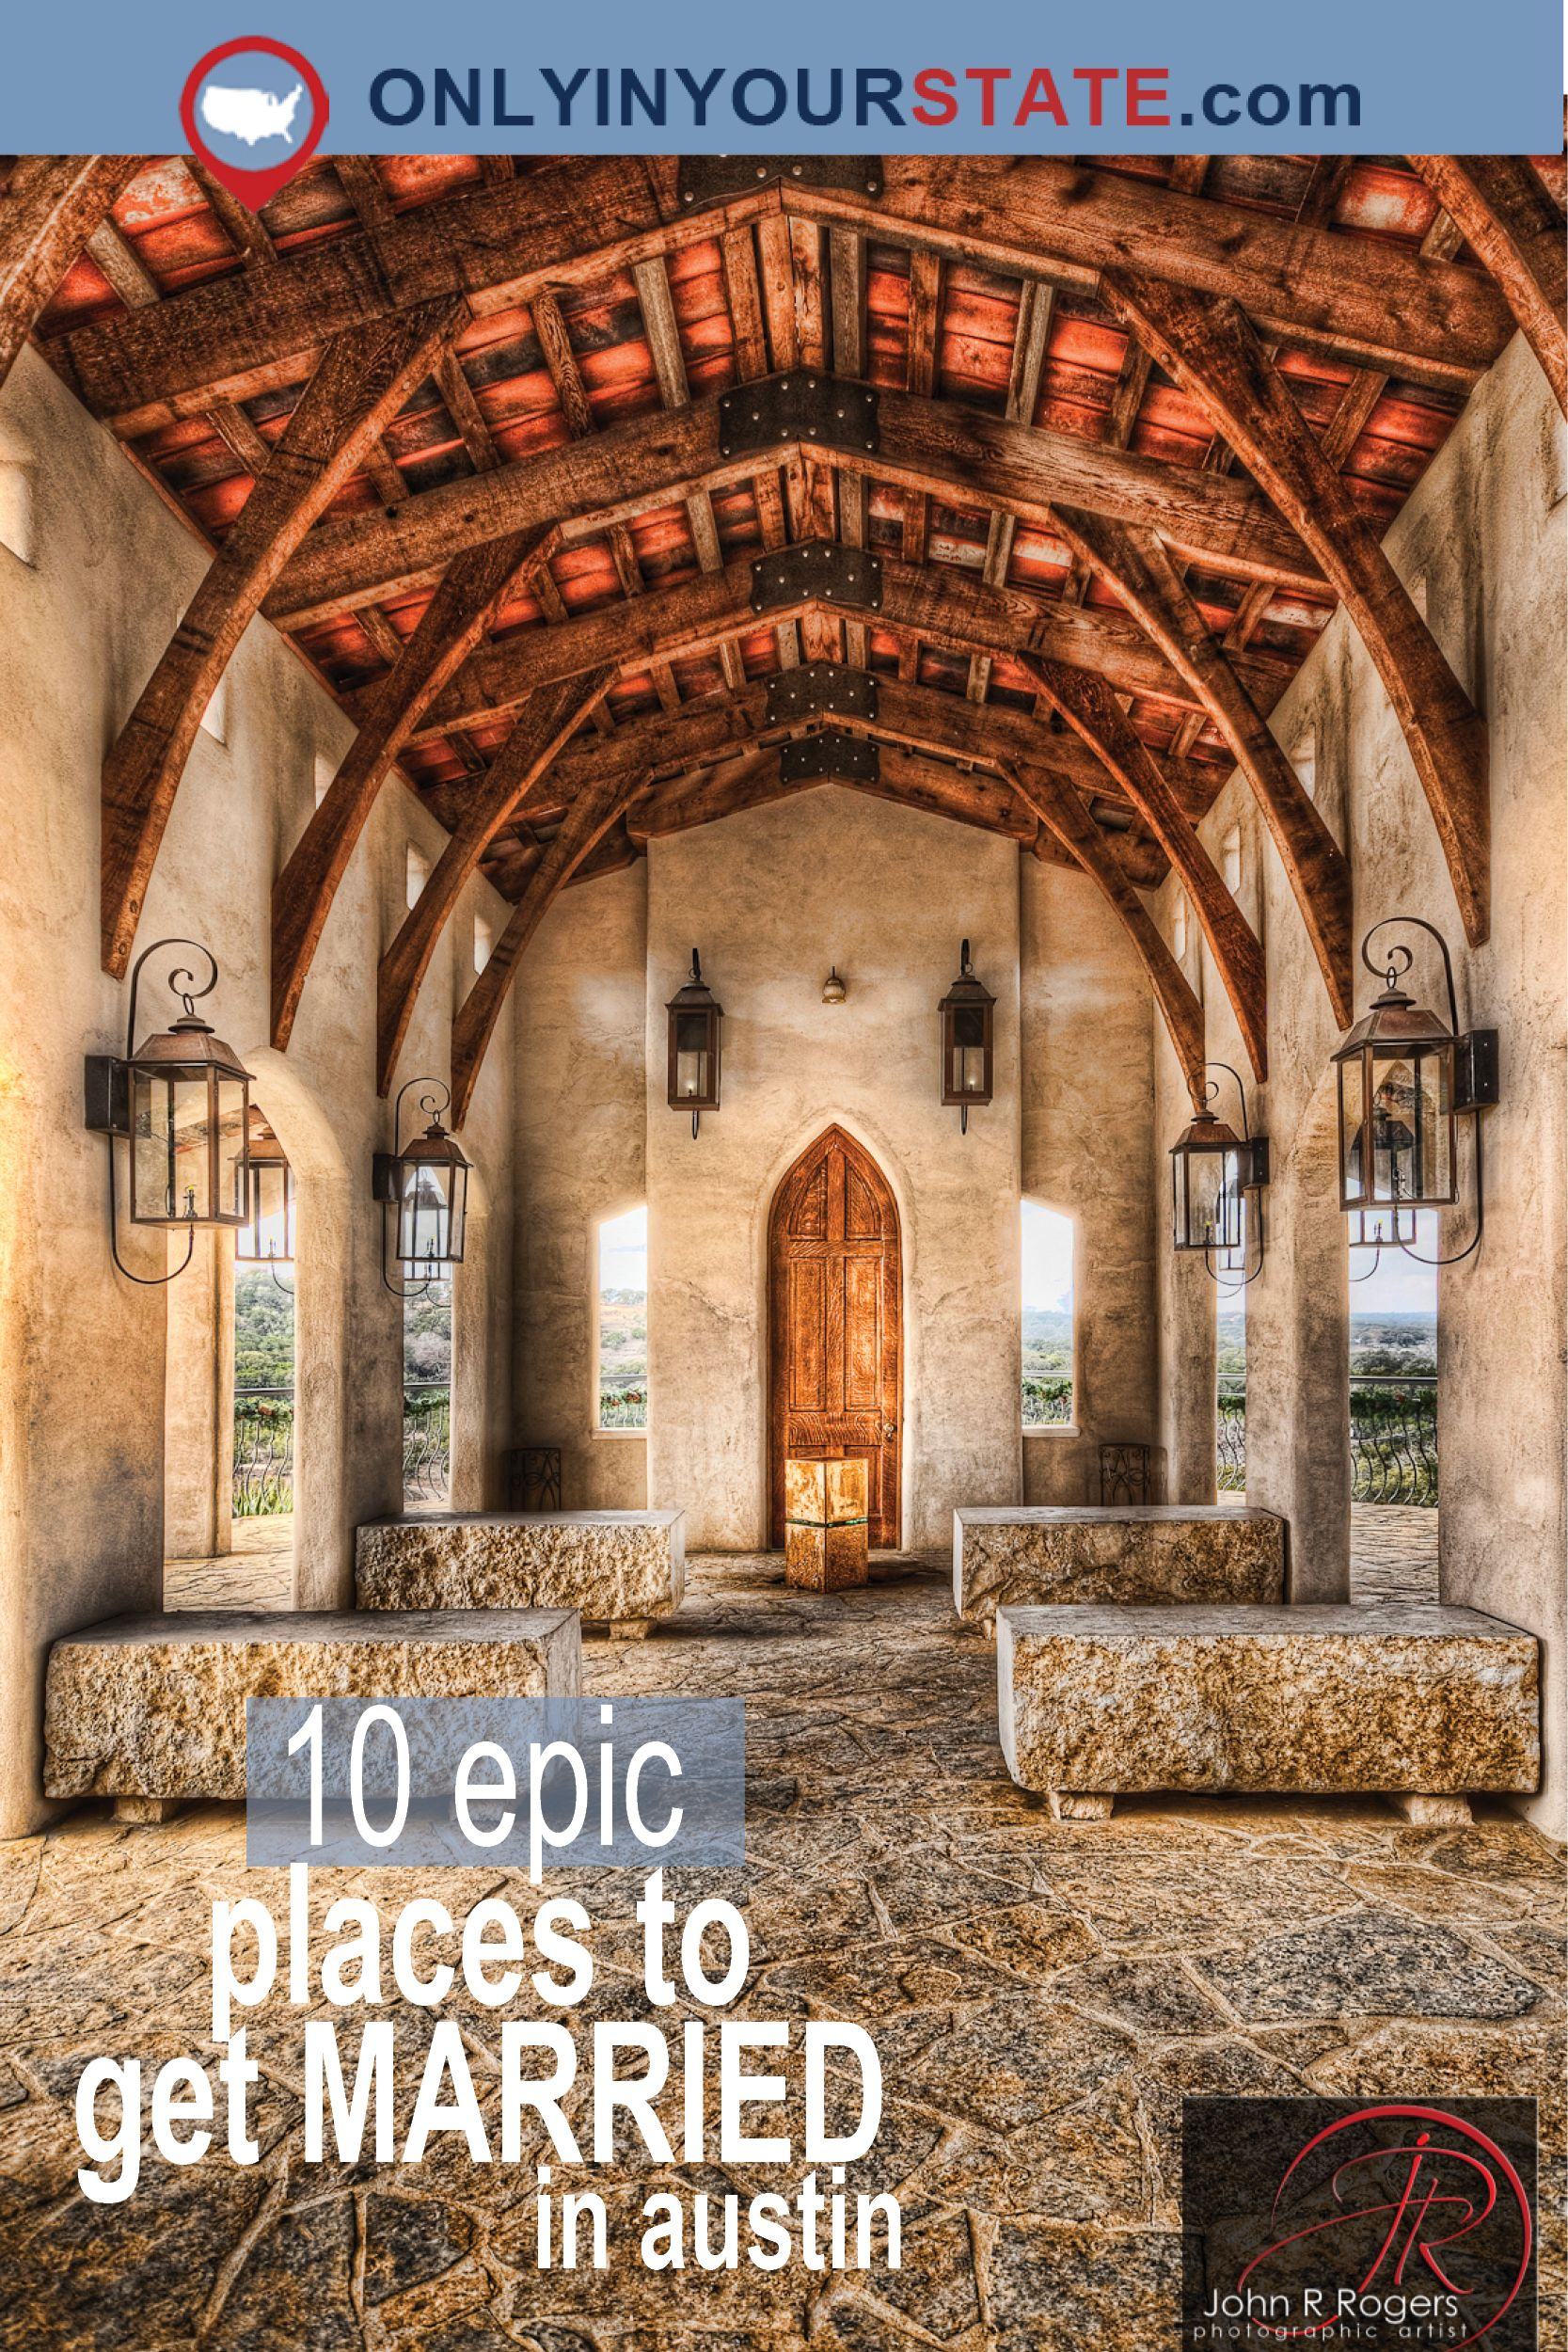 10 Epic Spots To Get Married In Austin That Ll Blow Your Guests Away Open Air Chapel Chapel Wedding Places To Get Married,What Is Chicken Subgum Chow Mein